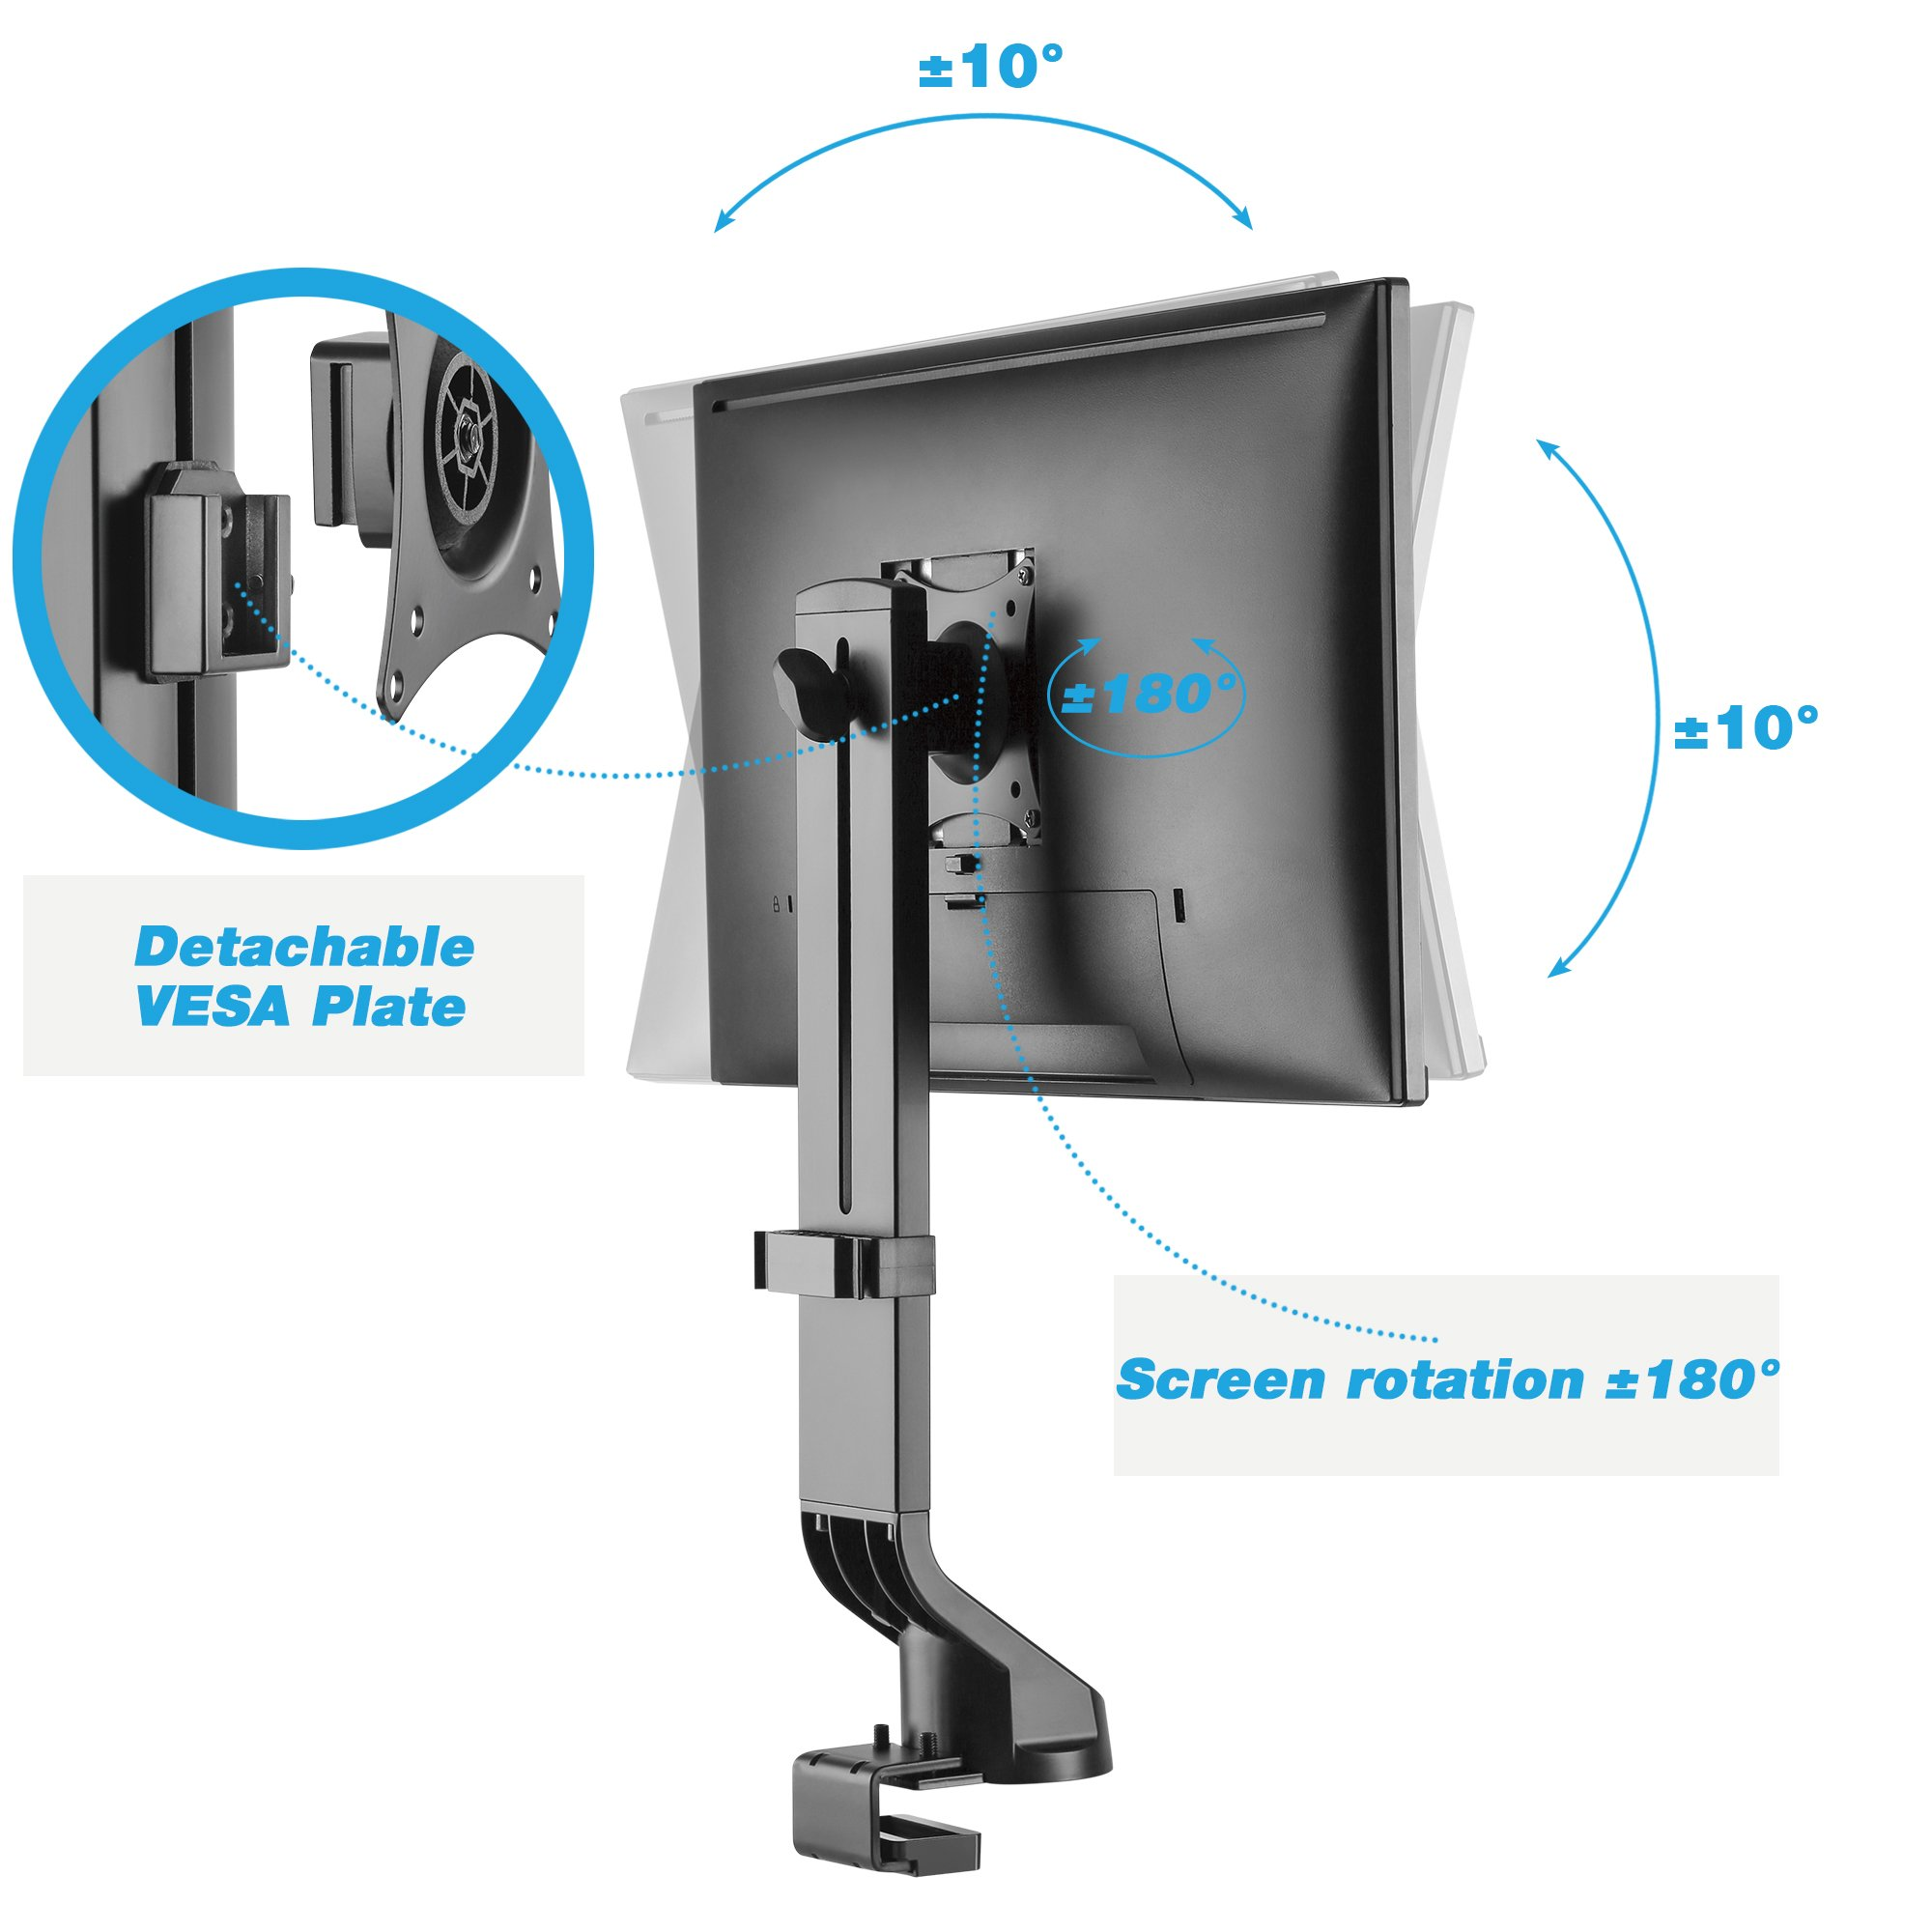 AVLT-Power Single Monitor Mount for Standing Desk Workstation - Extra Height Adjustment Range - Heavy Duty - Holds 17'' to 32'' Screens, up to 17.6 lbs, VESA 75x75mm 100x100mm by AVLT-Power (Image #3)